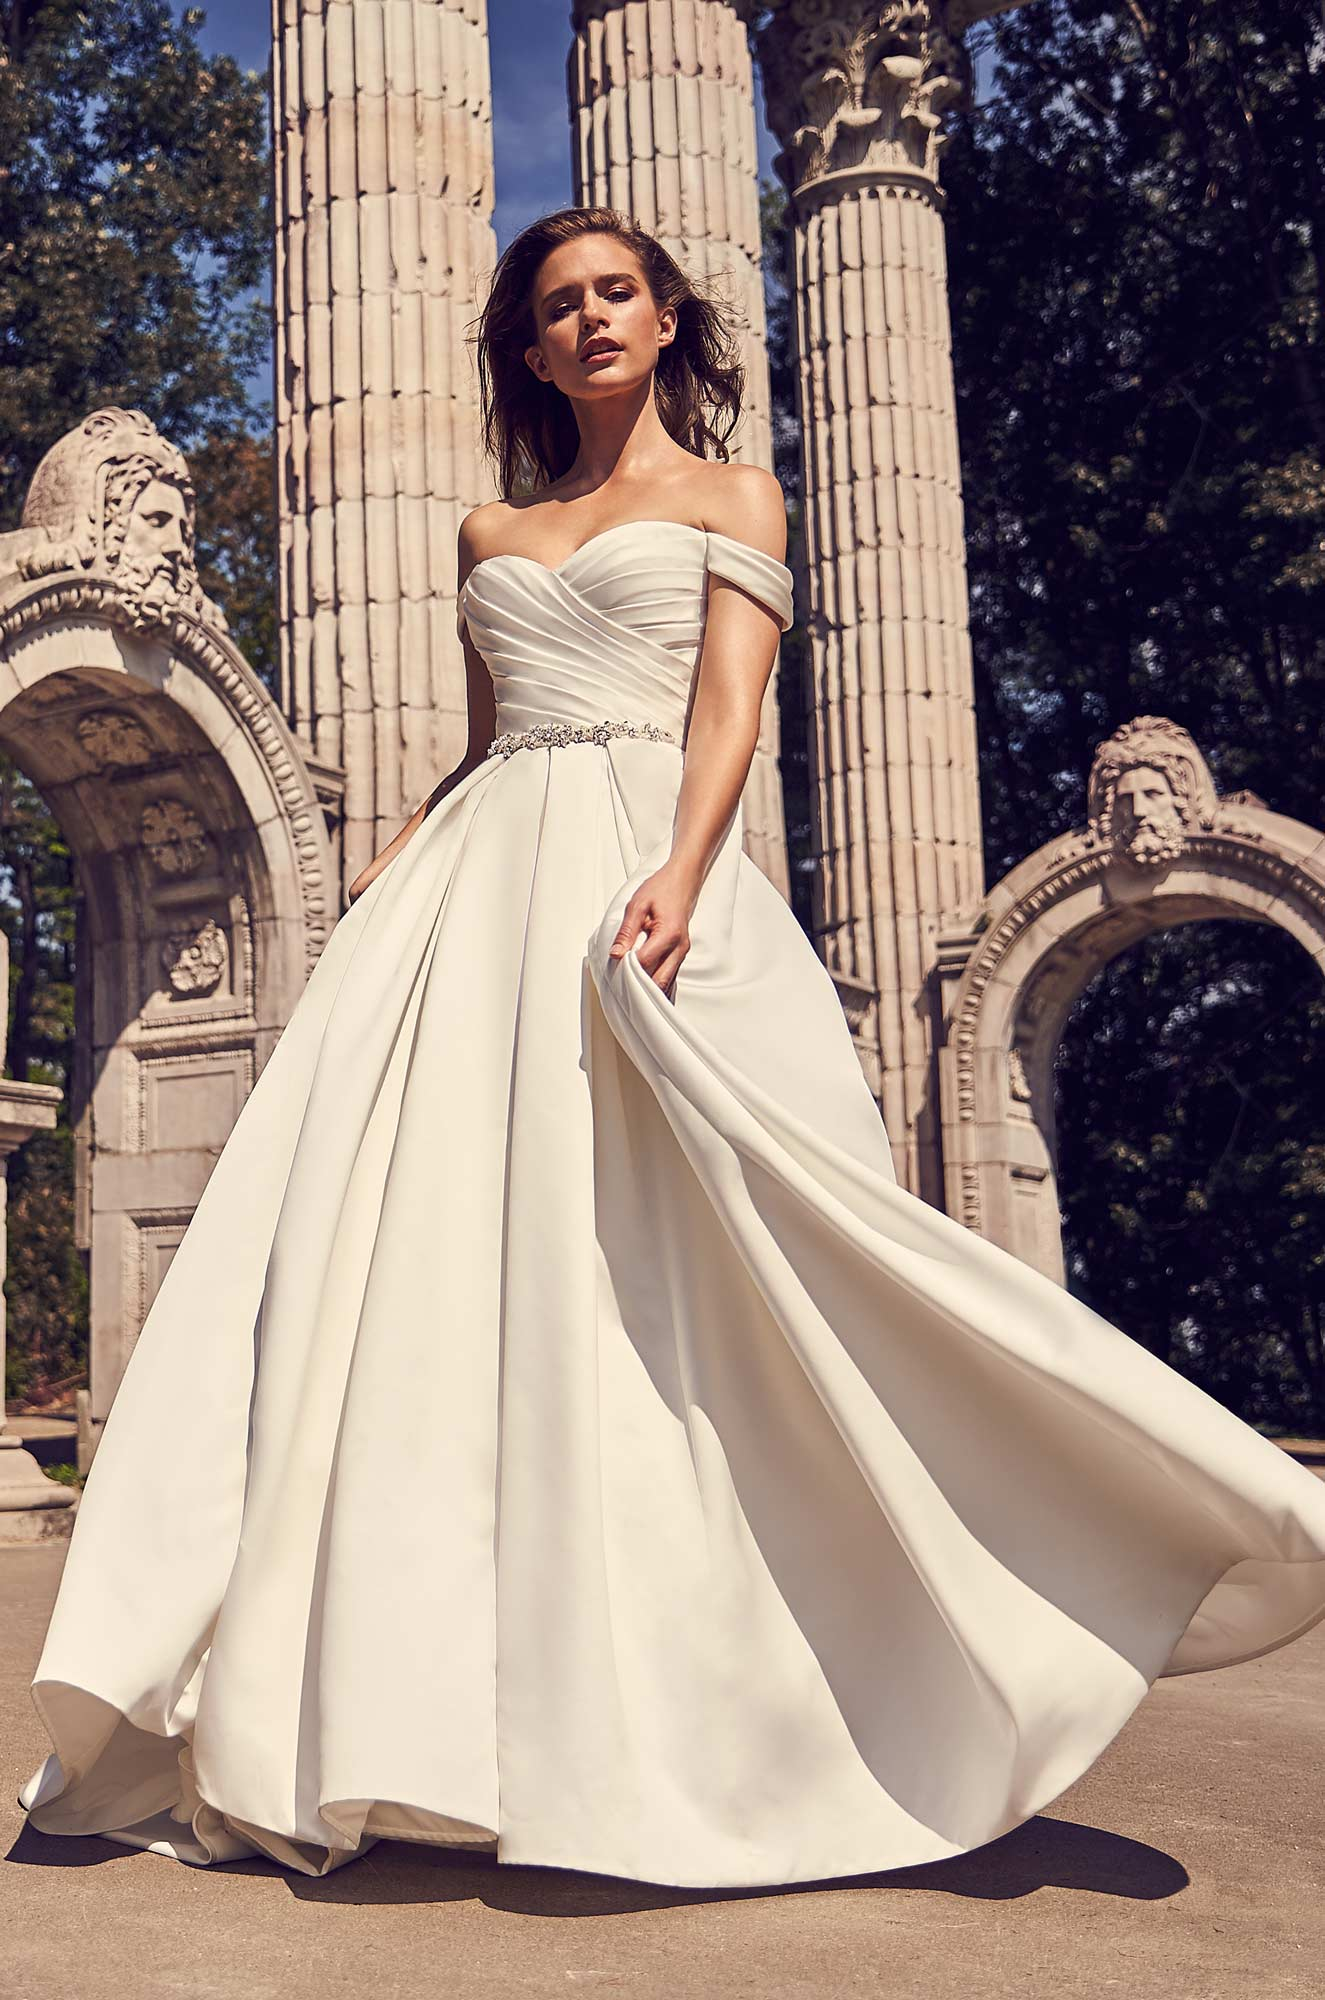 Draped Sleeve Ball Gown Wedding Dress – Style #2243 | Mikaella Bridal